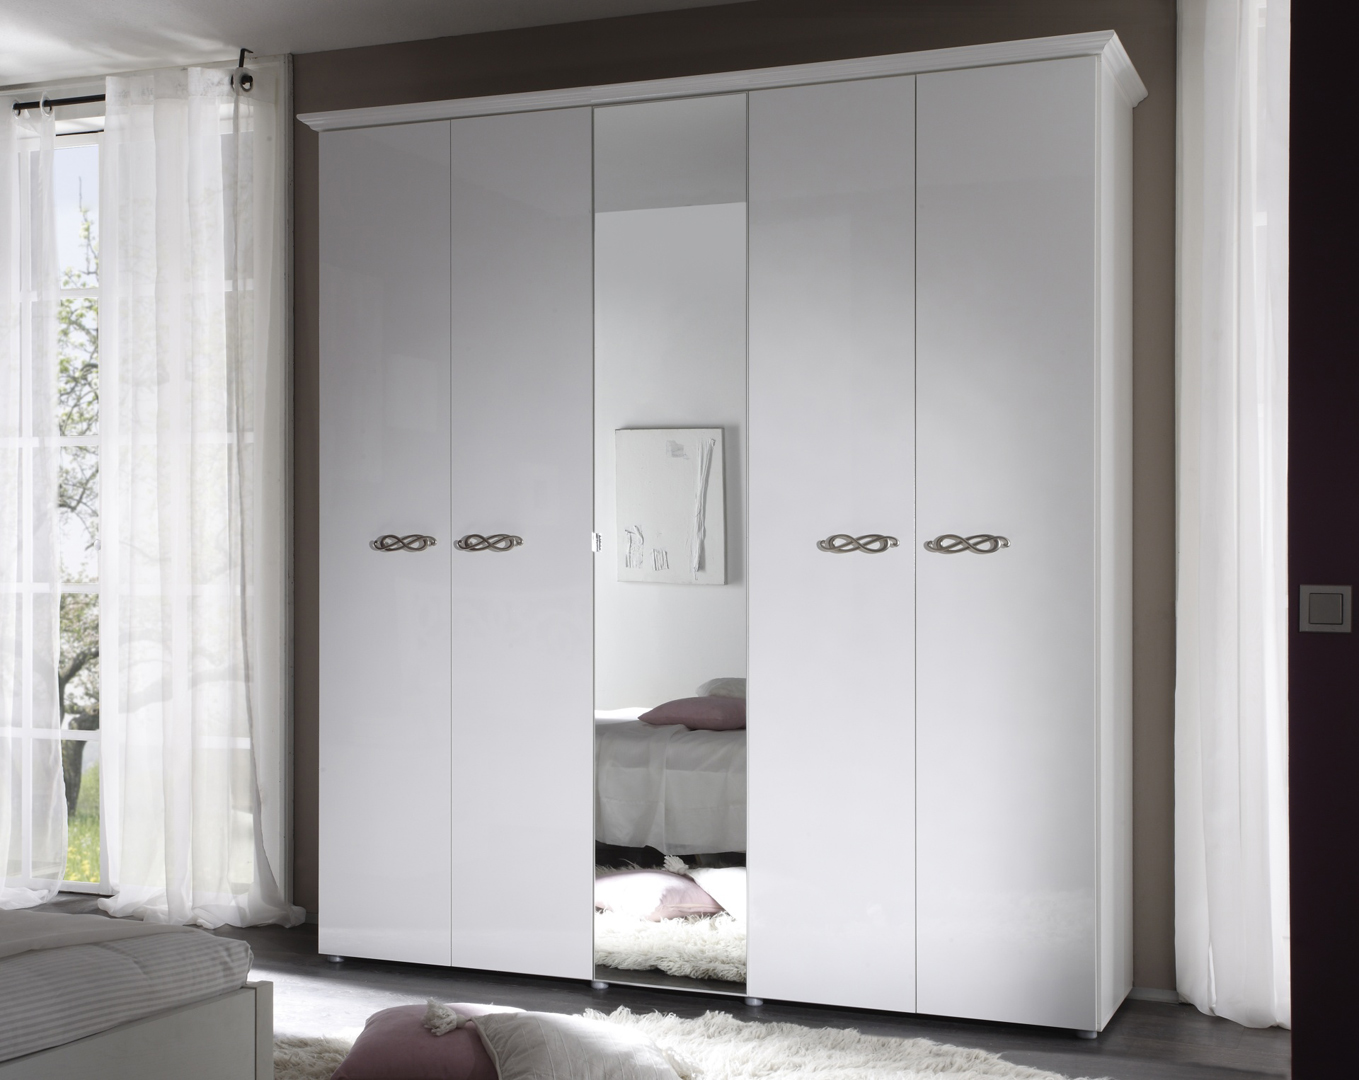 armoire design 5 portes 1 miroir laqu e blanche estelle matelpro. Black Bedroom Furniture Sets. Home Design Ideas